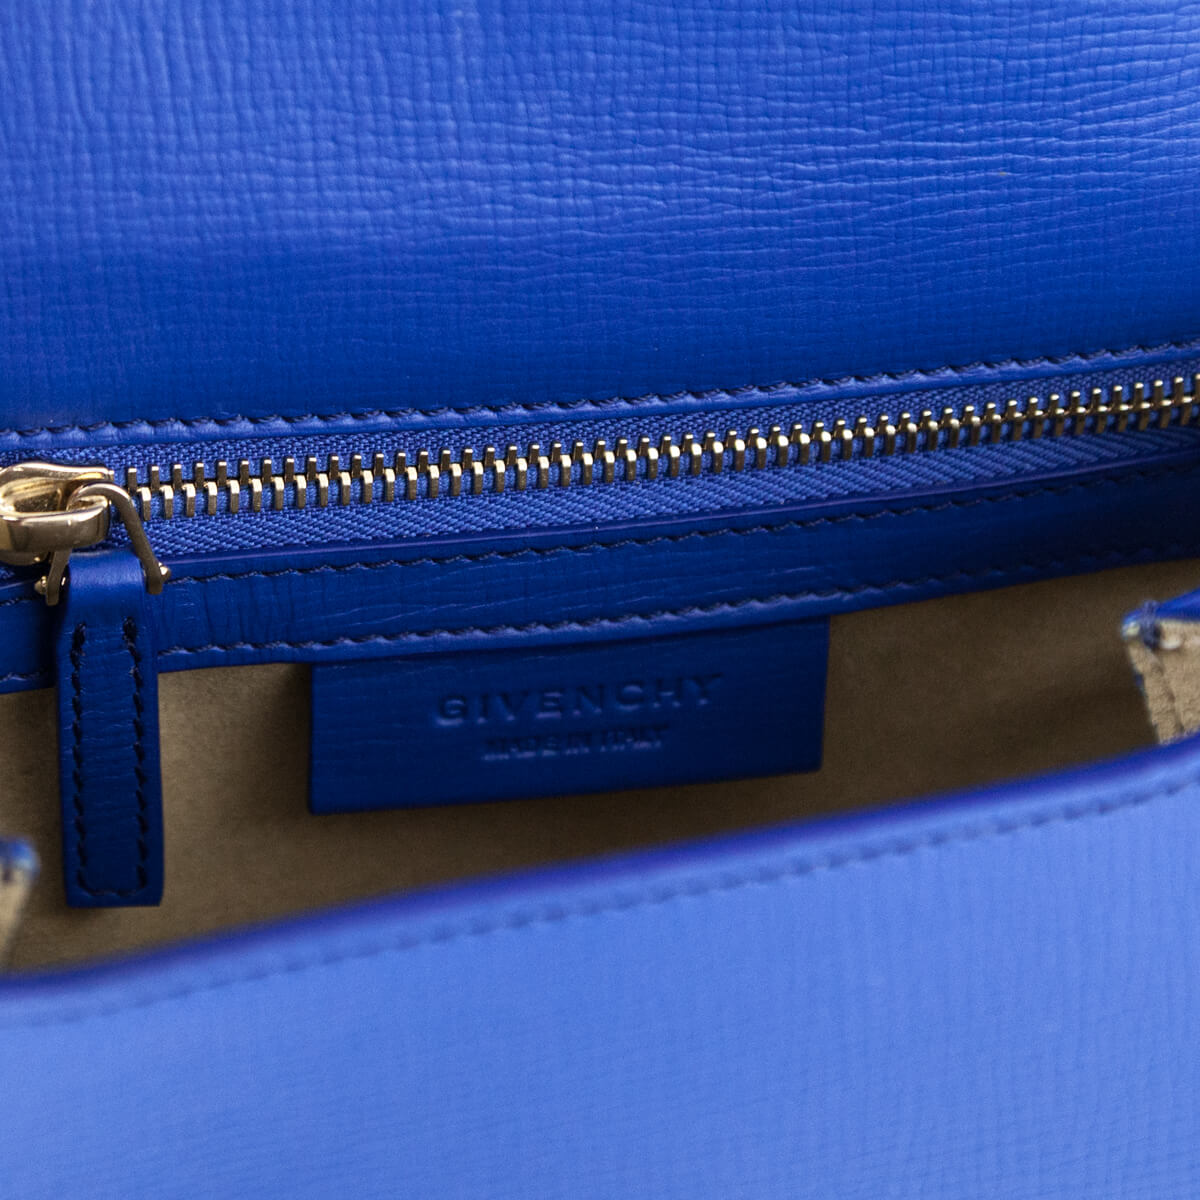 808338e98720 ... Givenchy Indigo Blue Calfskin Mini Pandora Box Shoulder Bag - LOVE that  BAG - Preowned Authentic ...